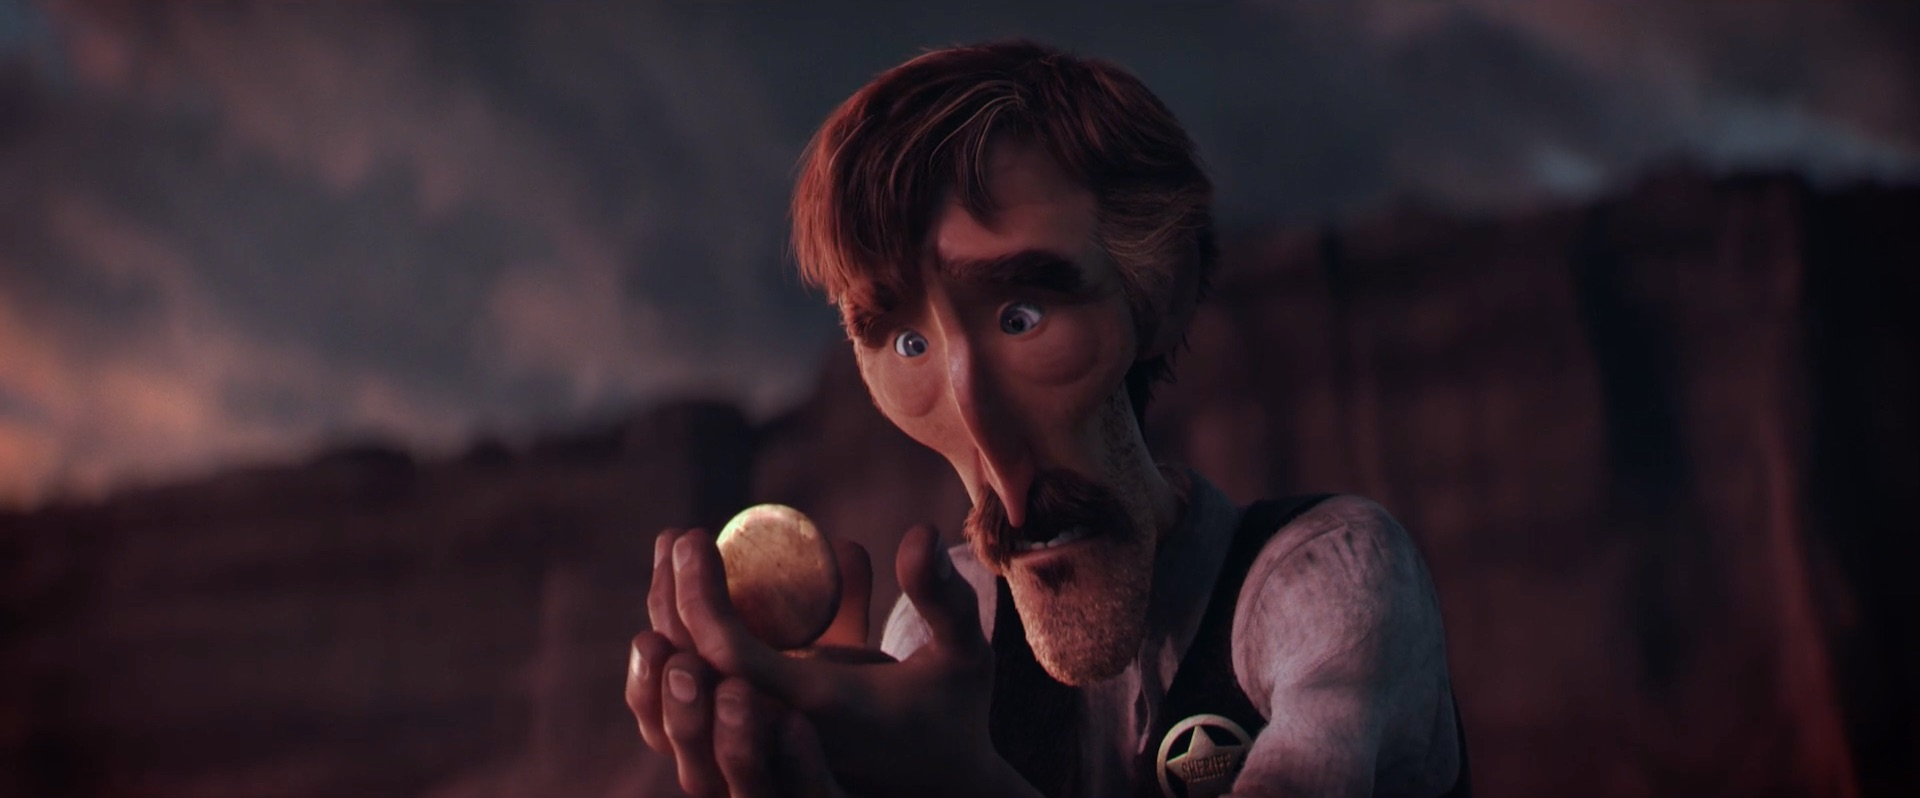 borrowed time short film: pixar animators go dark